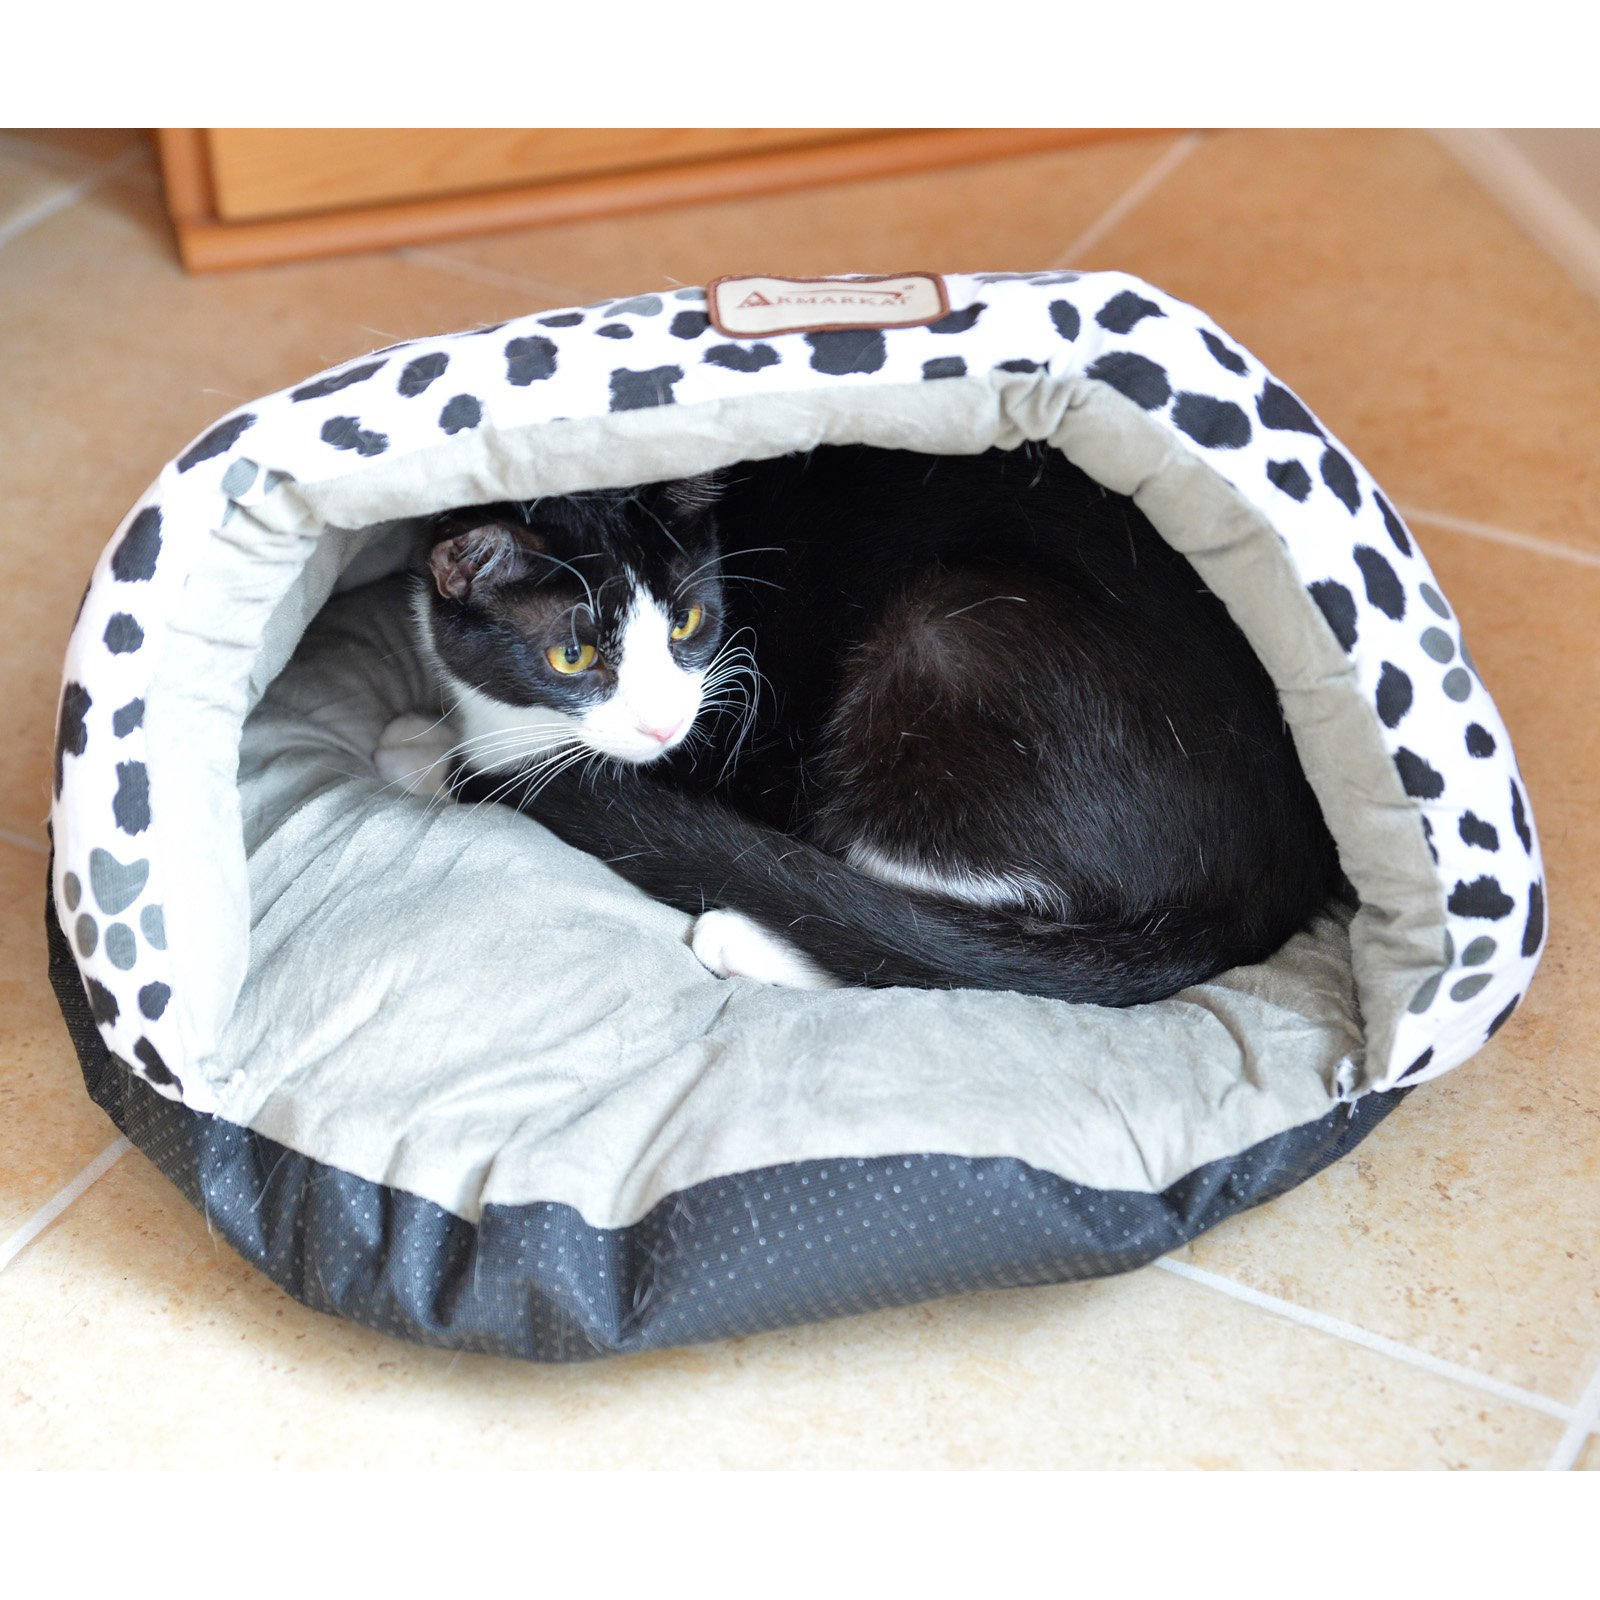 Armarkat Paw Print Cat Bed Size, 20-Inch by 11-Inch, C19HZY/HL